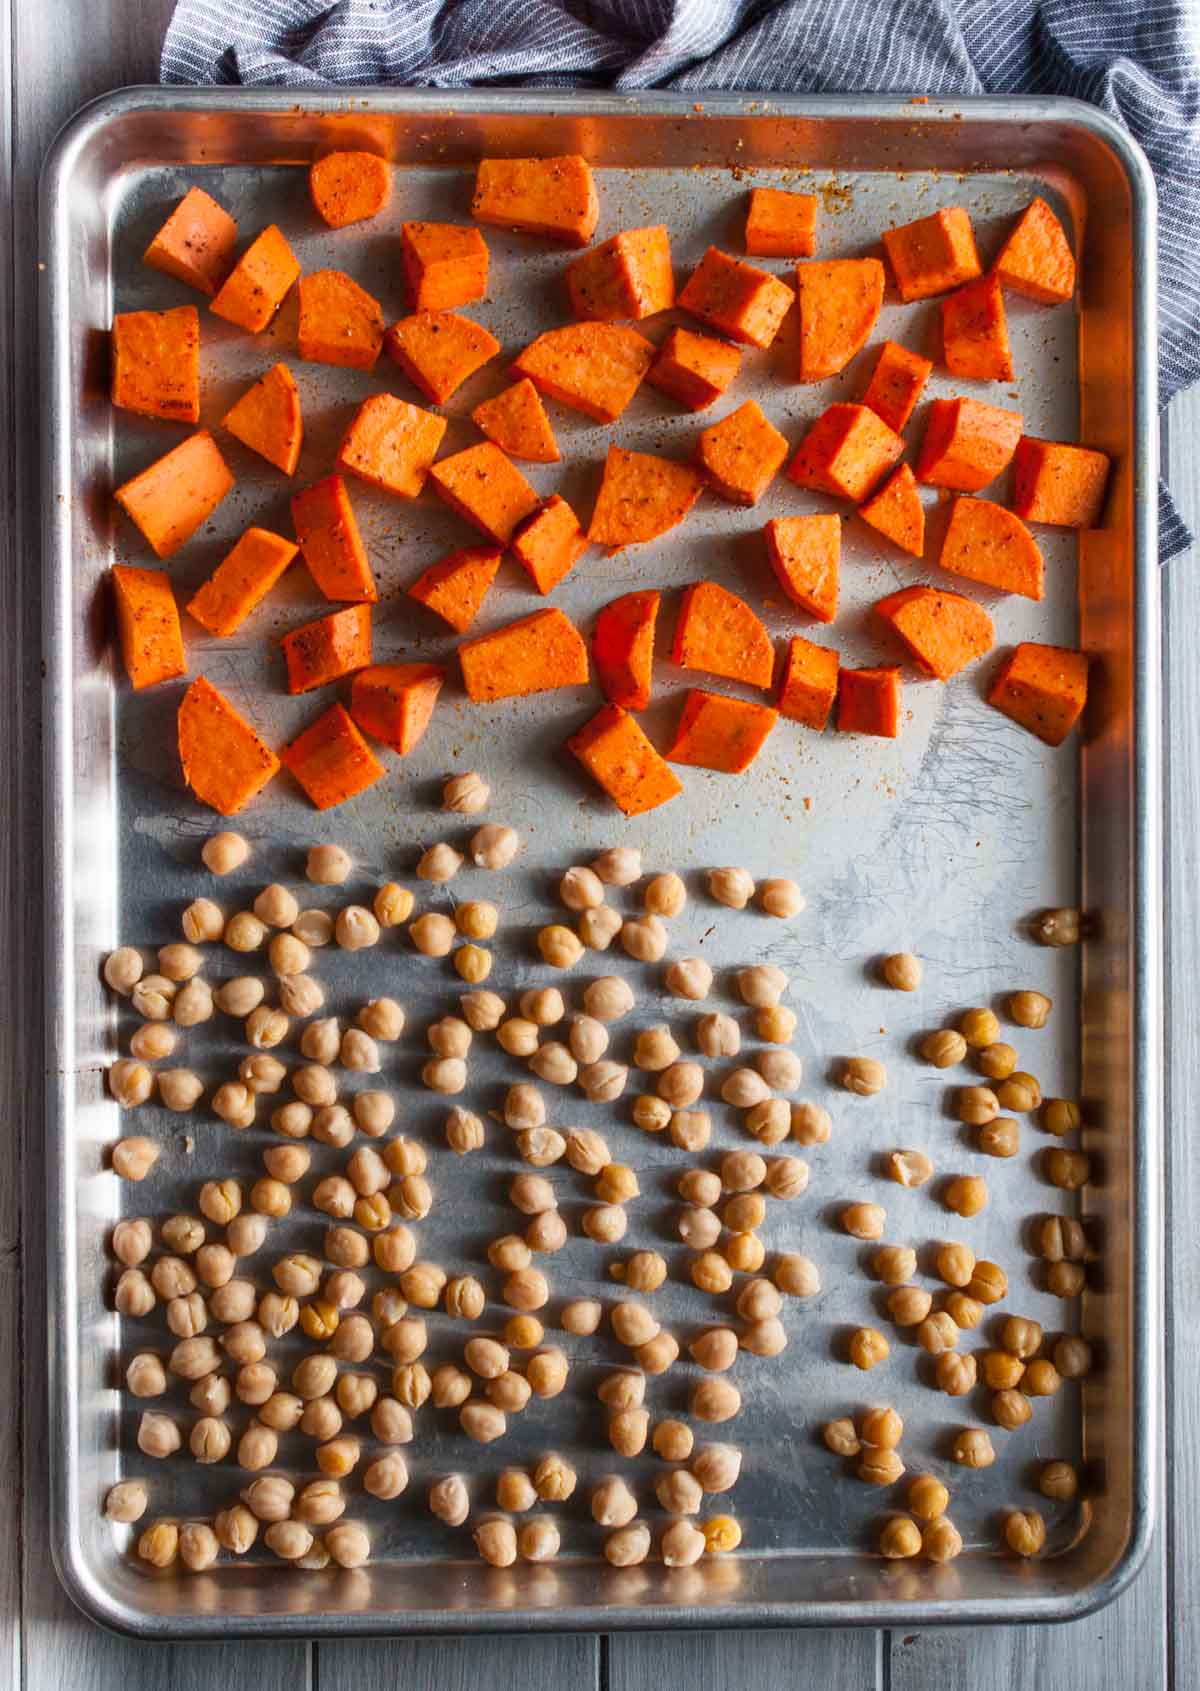 Tasty arugula sweet potato salad with zesty yet creamy tahini dressing, crunchy roasted chickpeas, and a pop of tartness from juicy pomegranate arils.